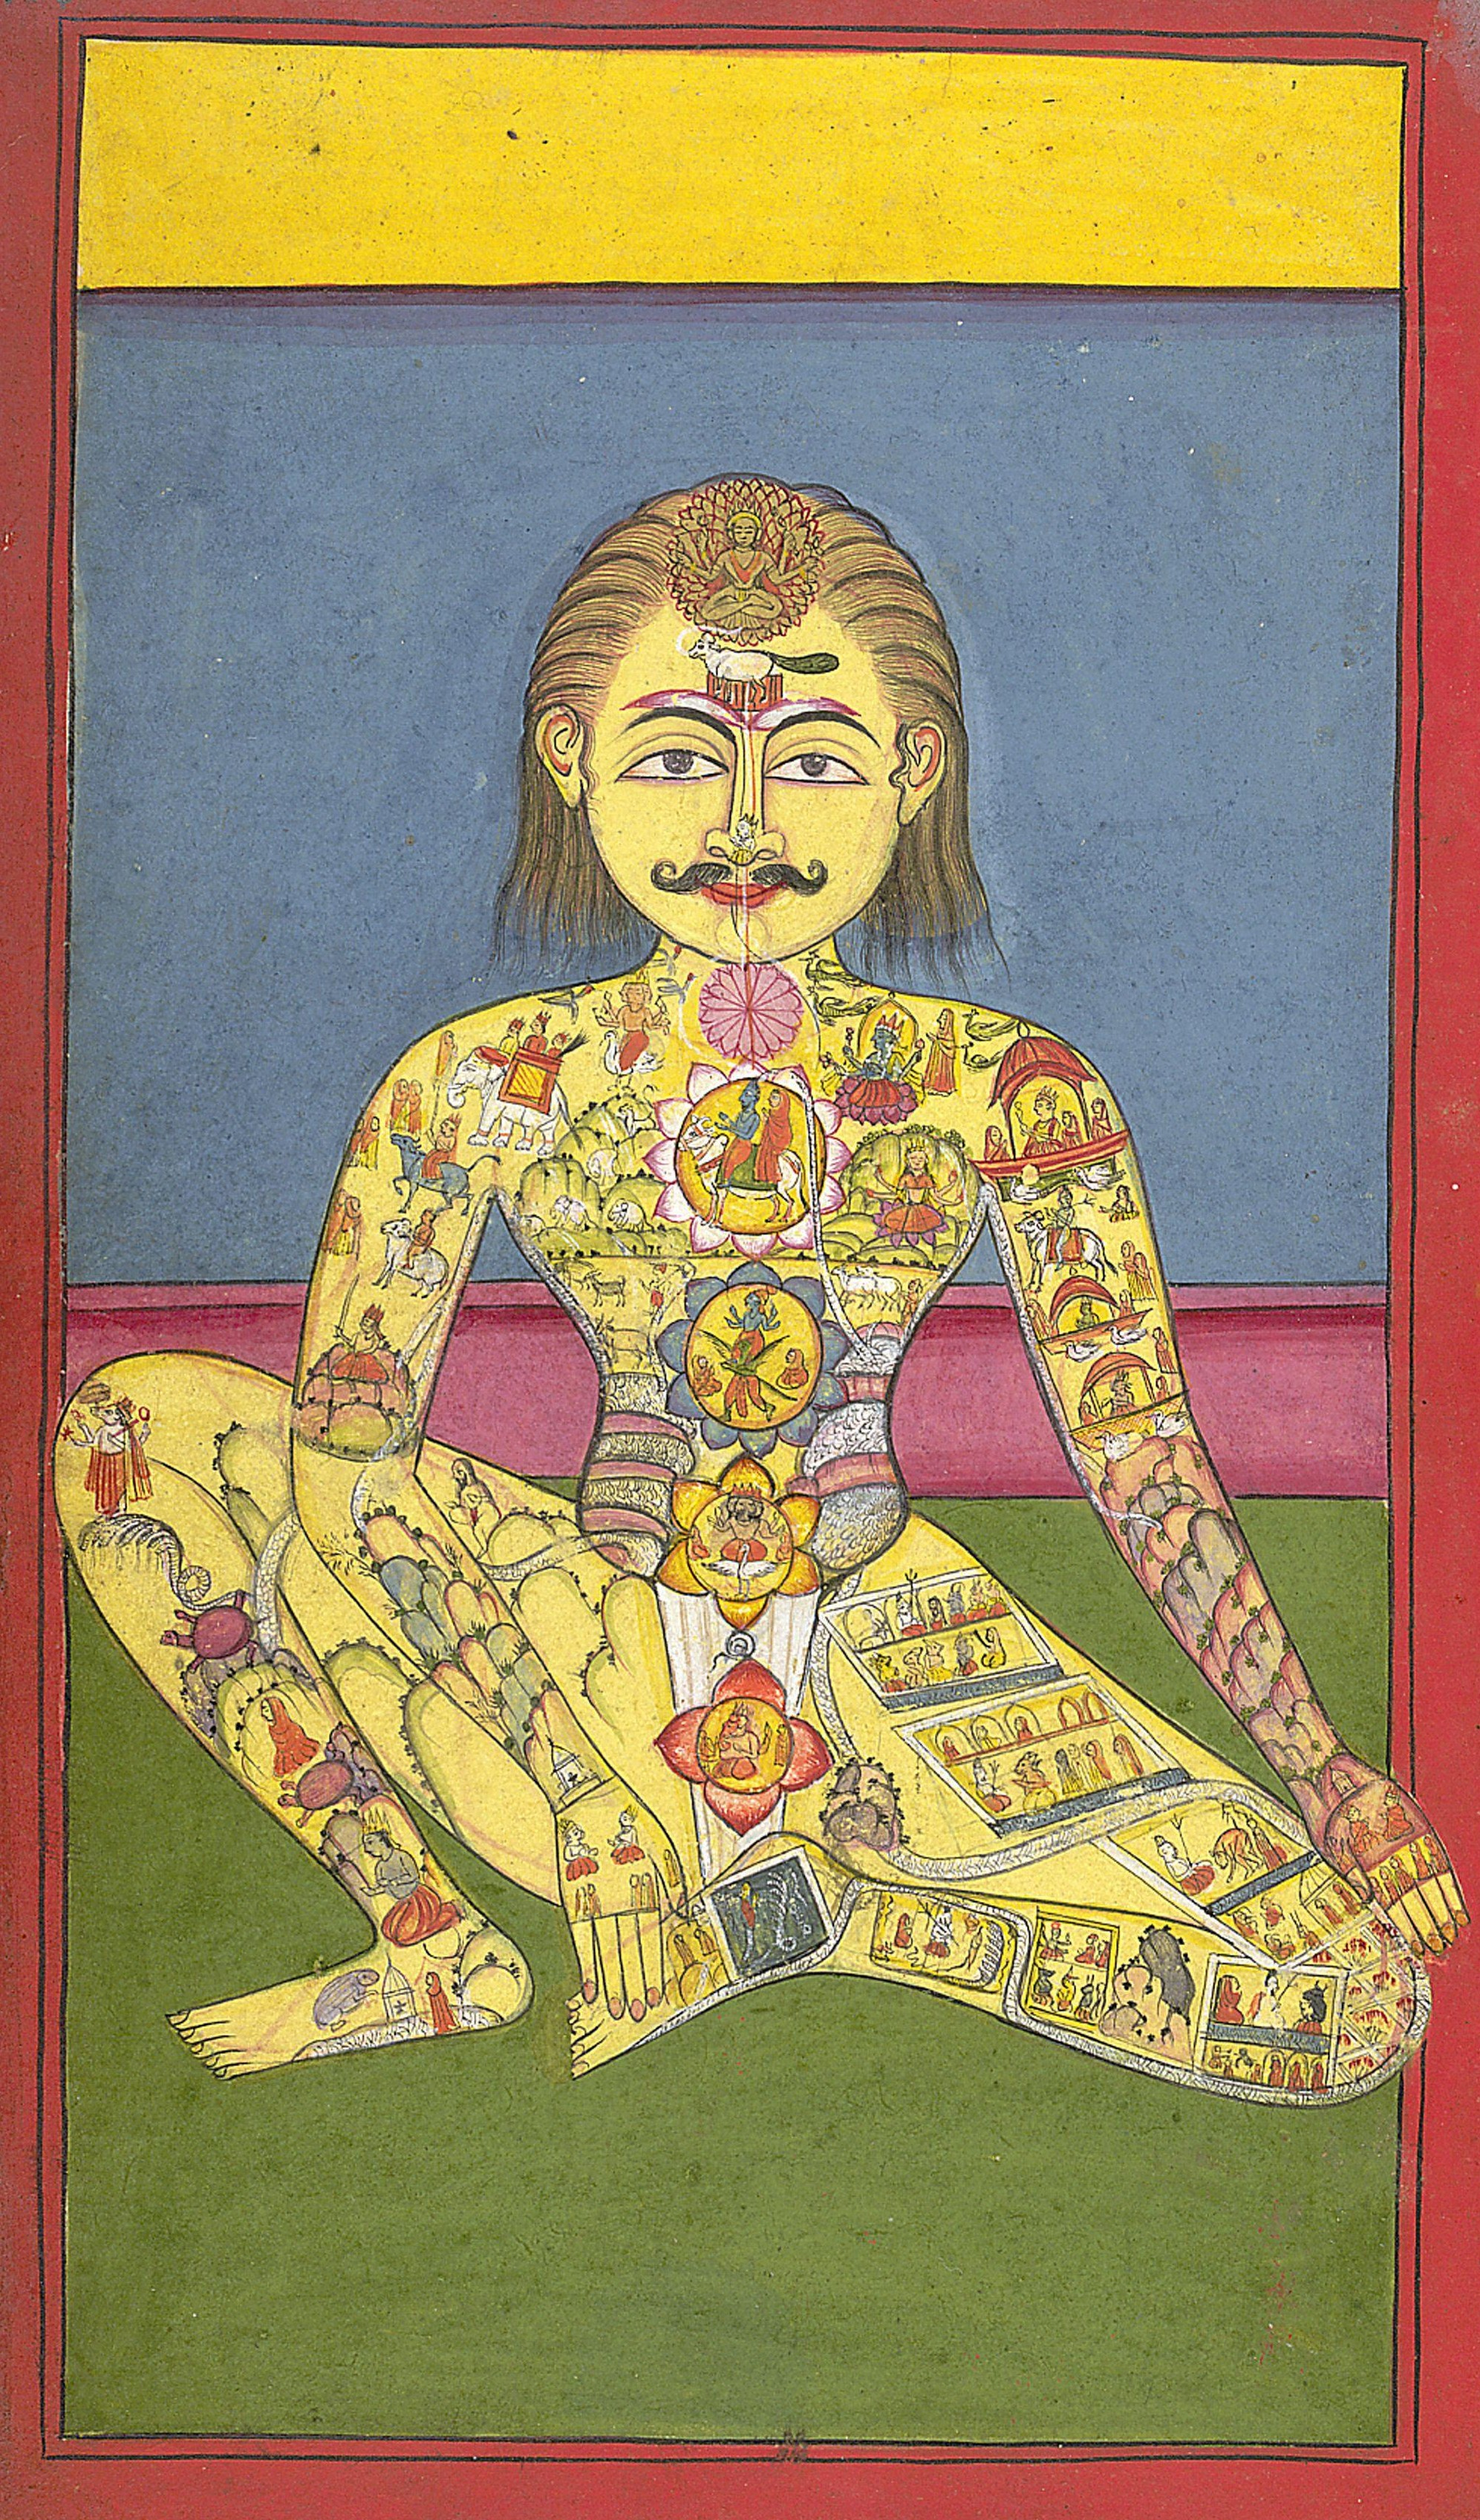 Sapta Chakra, from a Yoga manuscipt in Braj Bhasa lanaguage with 118 pages. 1899.